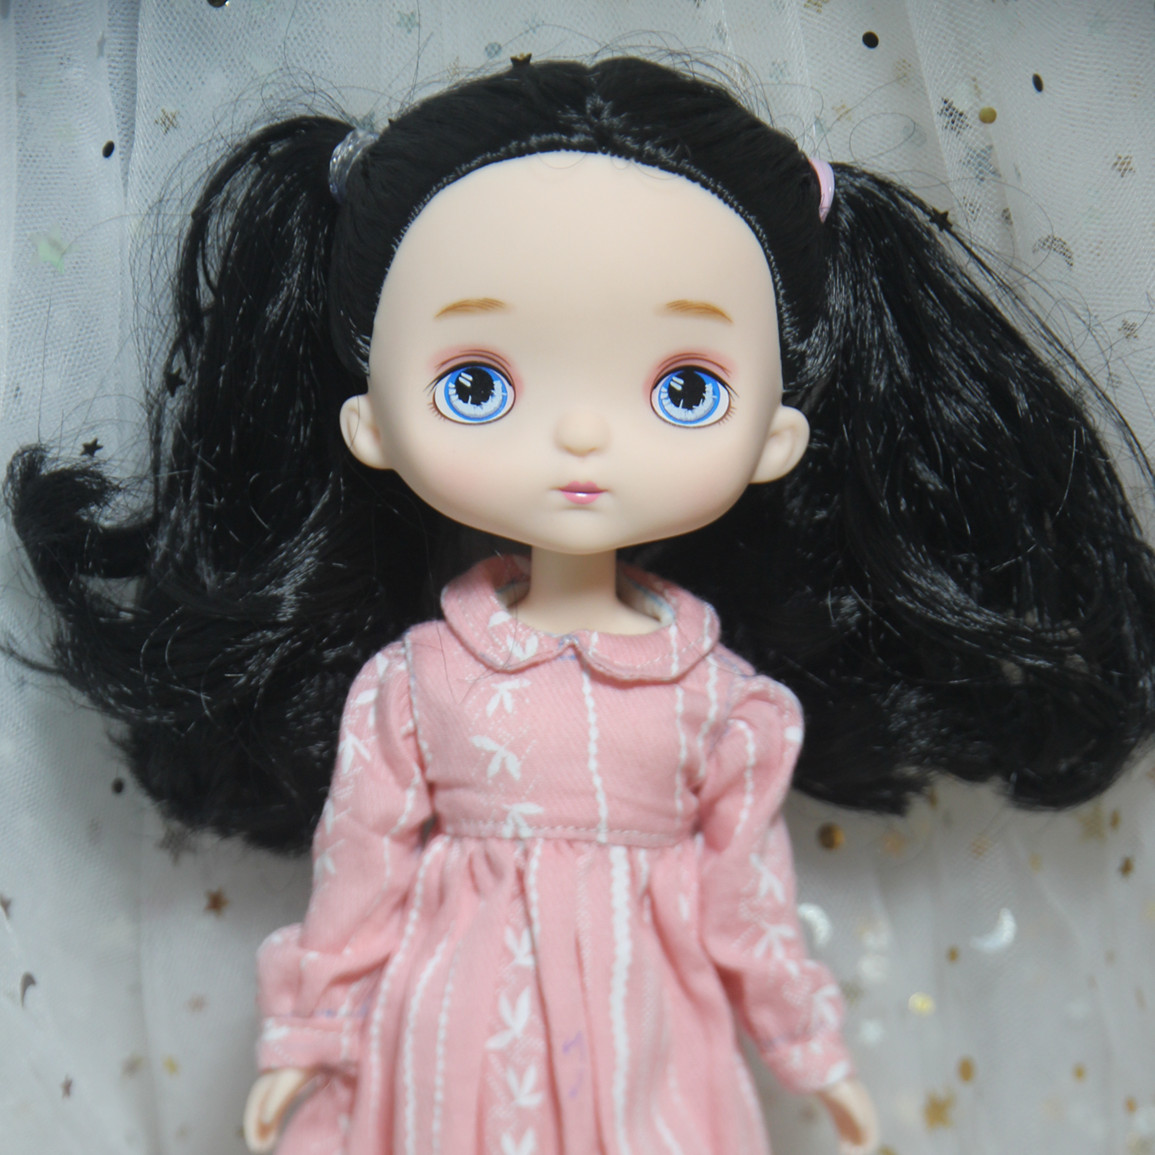 Cute Kawaii 13 Moveable Jointed Girl Doll Play House Toy <font><b>BJD</b></font> <font><b>1/8</b></font> Dolls Children Kids Birthday Gift Collection 17cm image